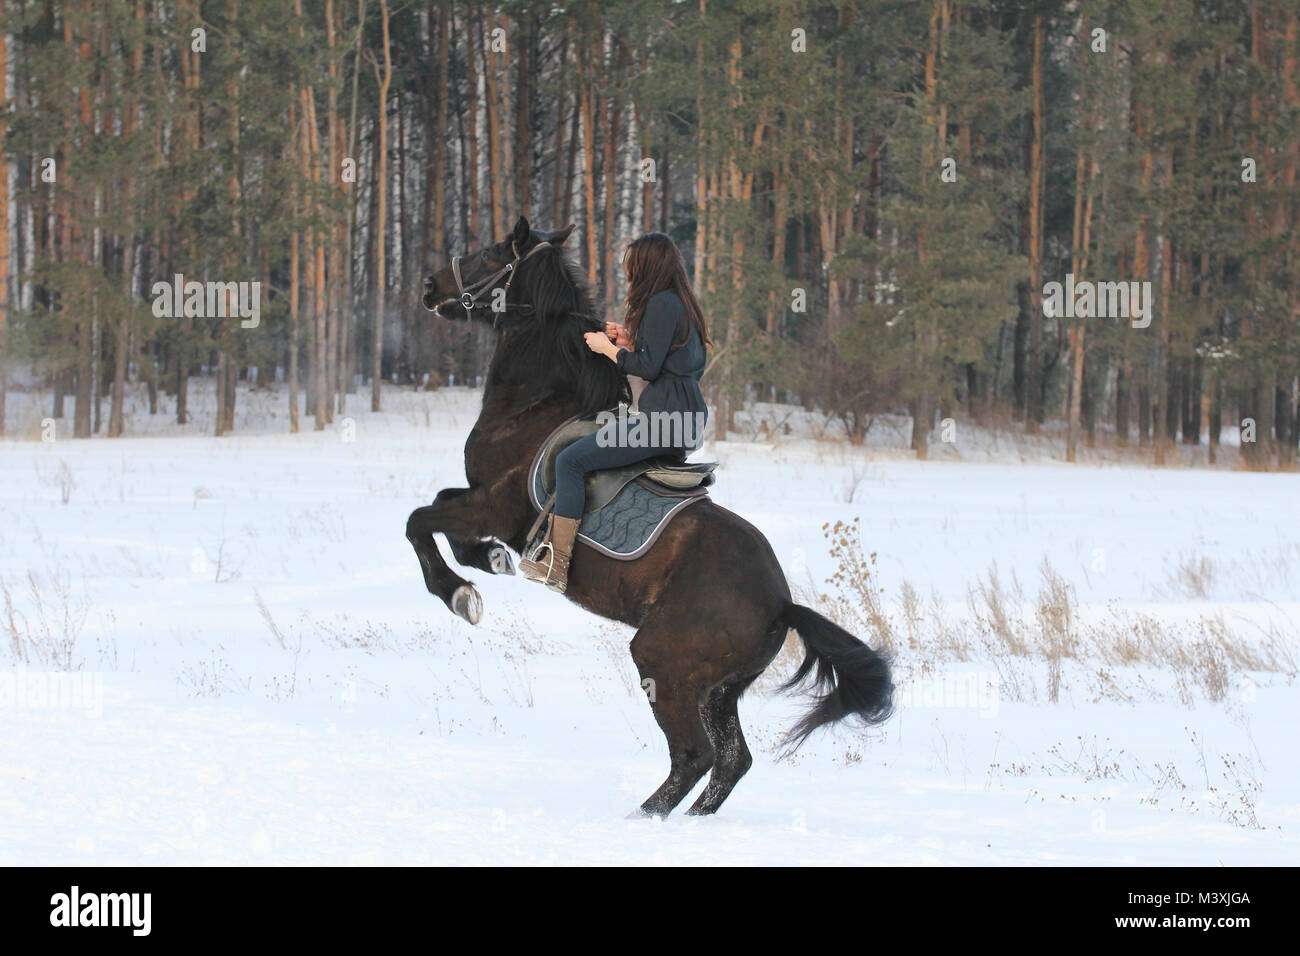 Young black haired woman on top a bay horse in winter forest - Stock Image